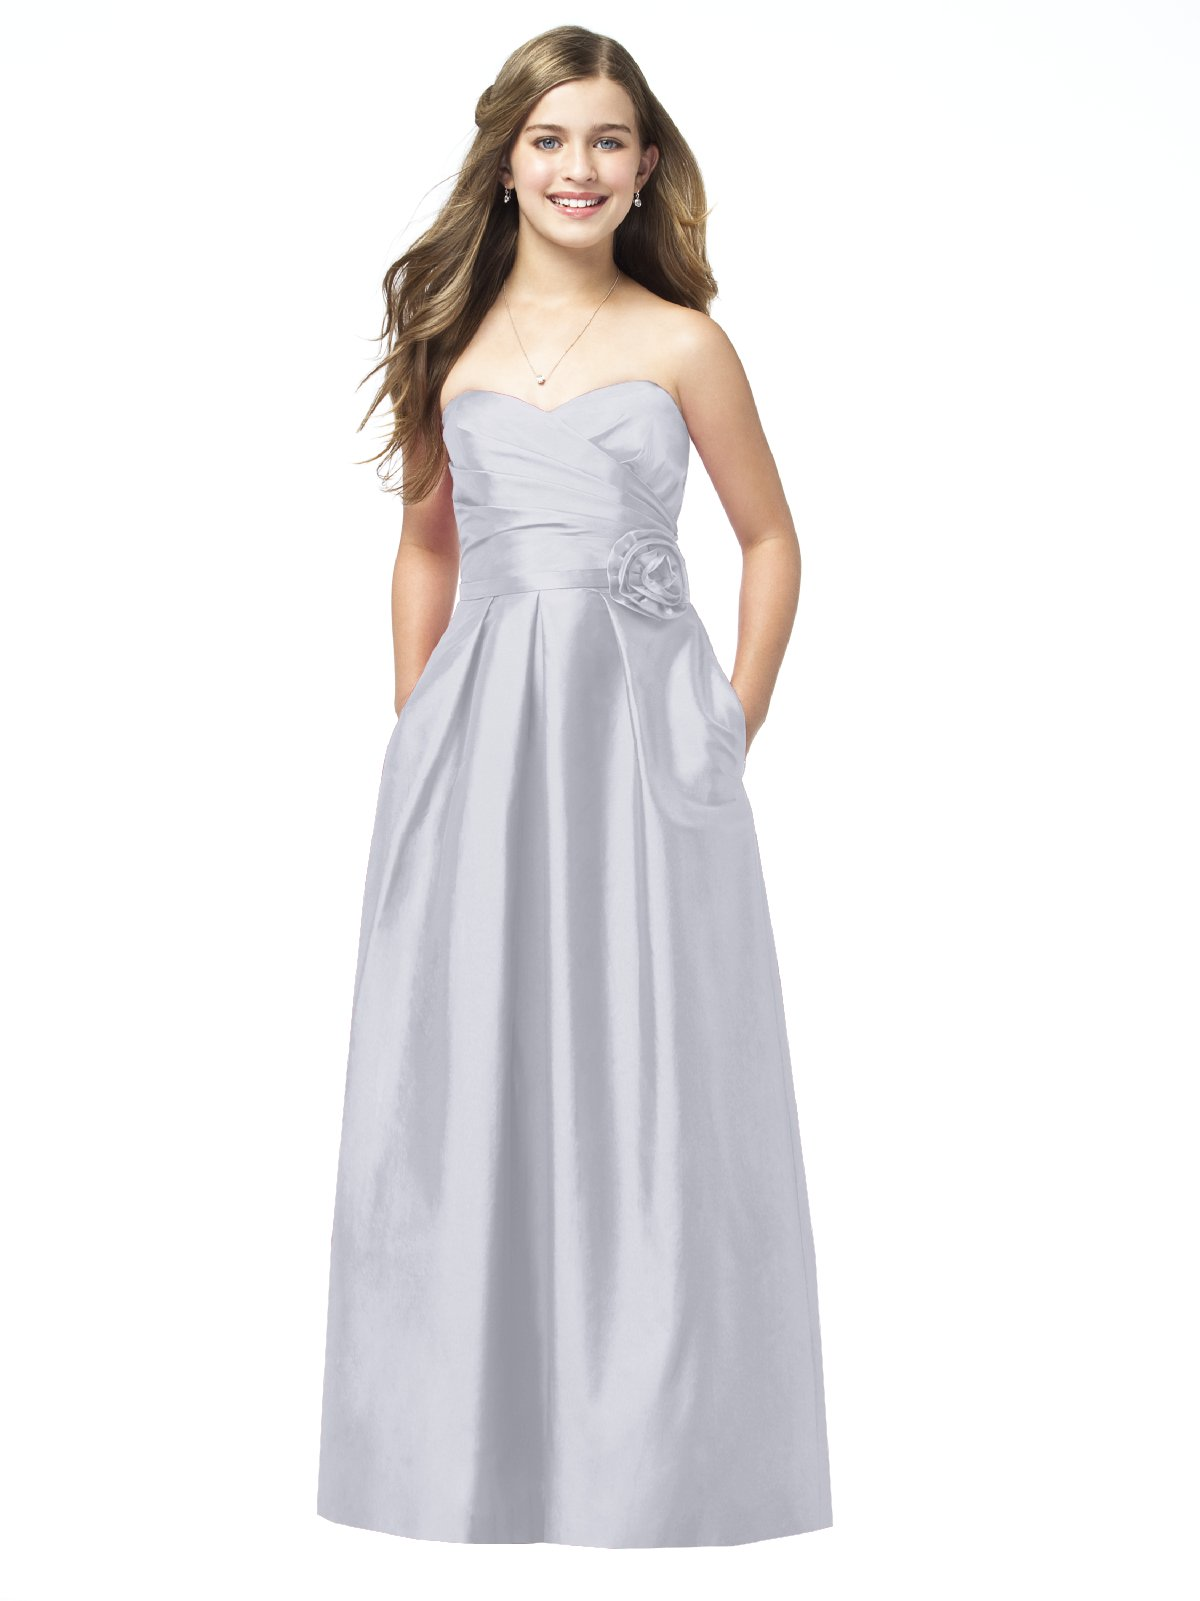 Silver A Line Strapless Sweetheart Zipper Floor Length Satin Prom Dresses With Flowers And Pockets